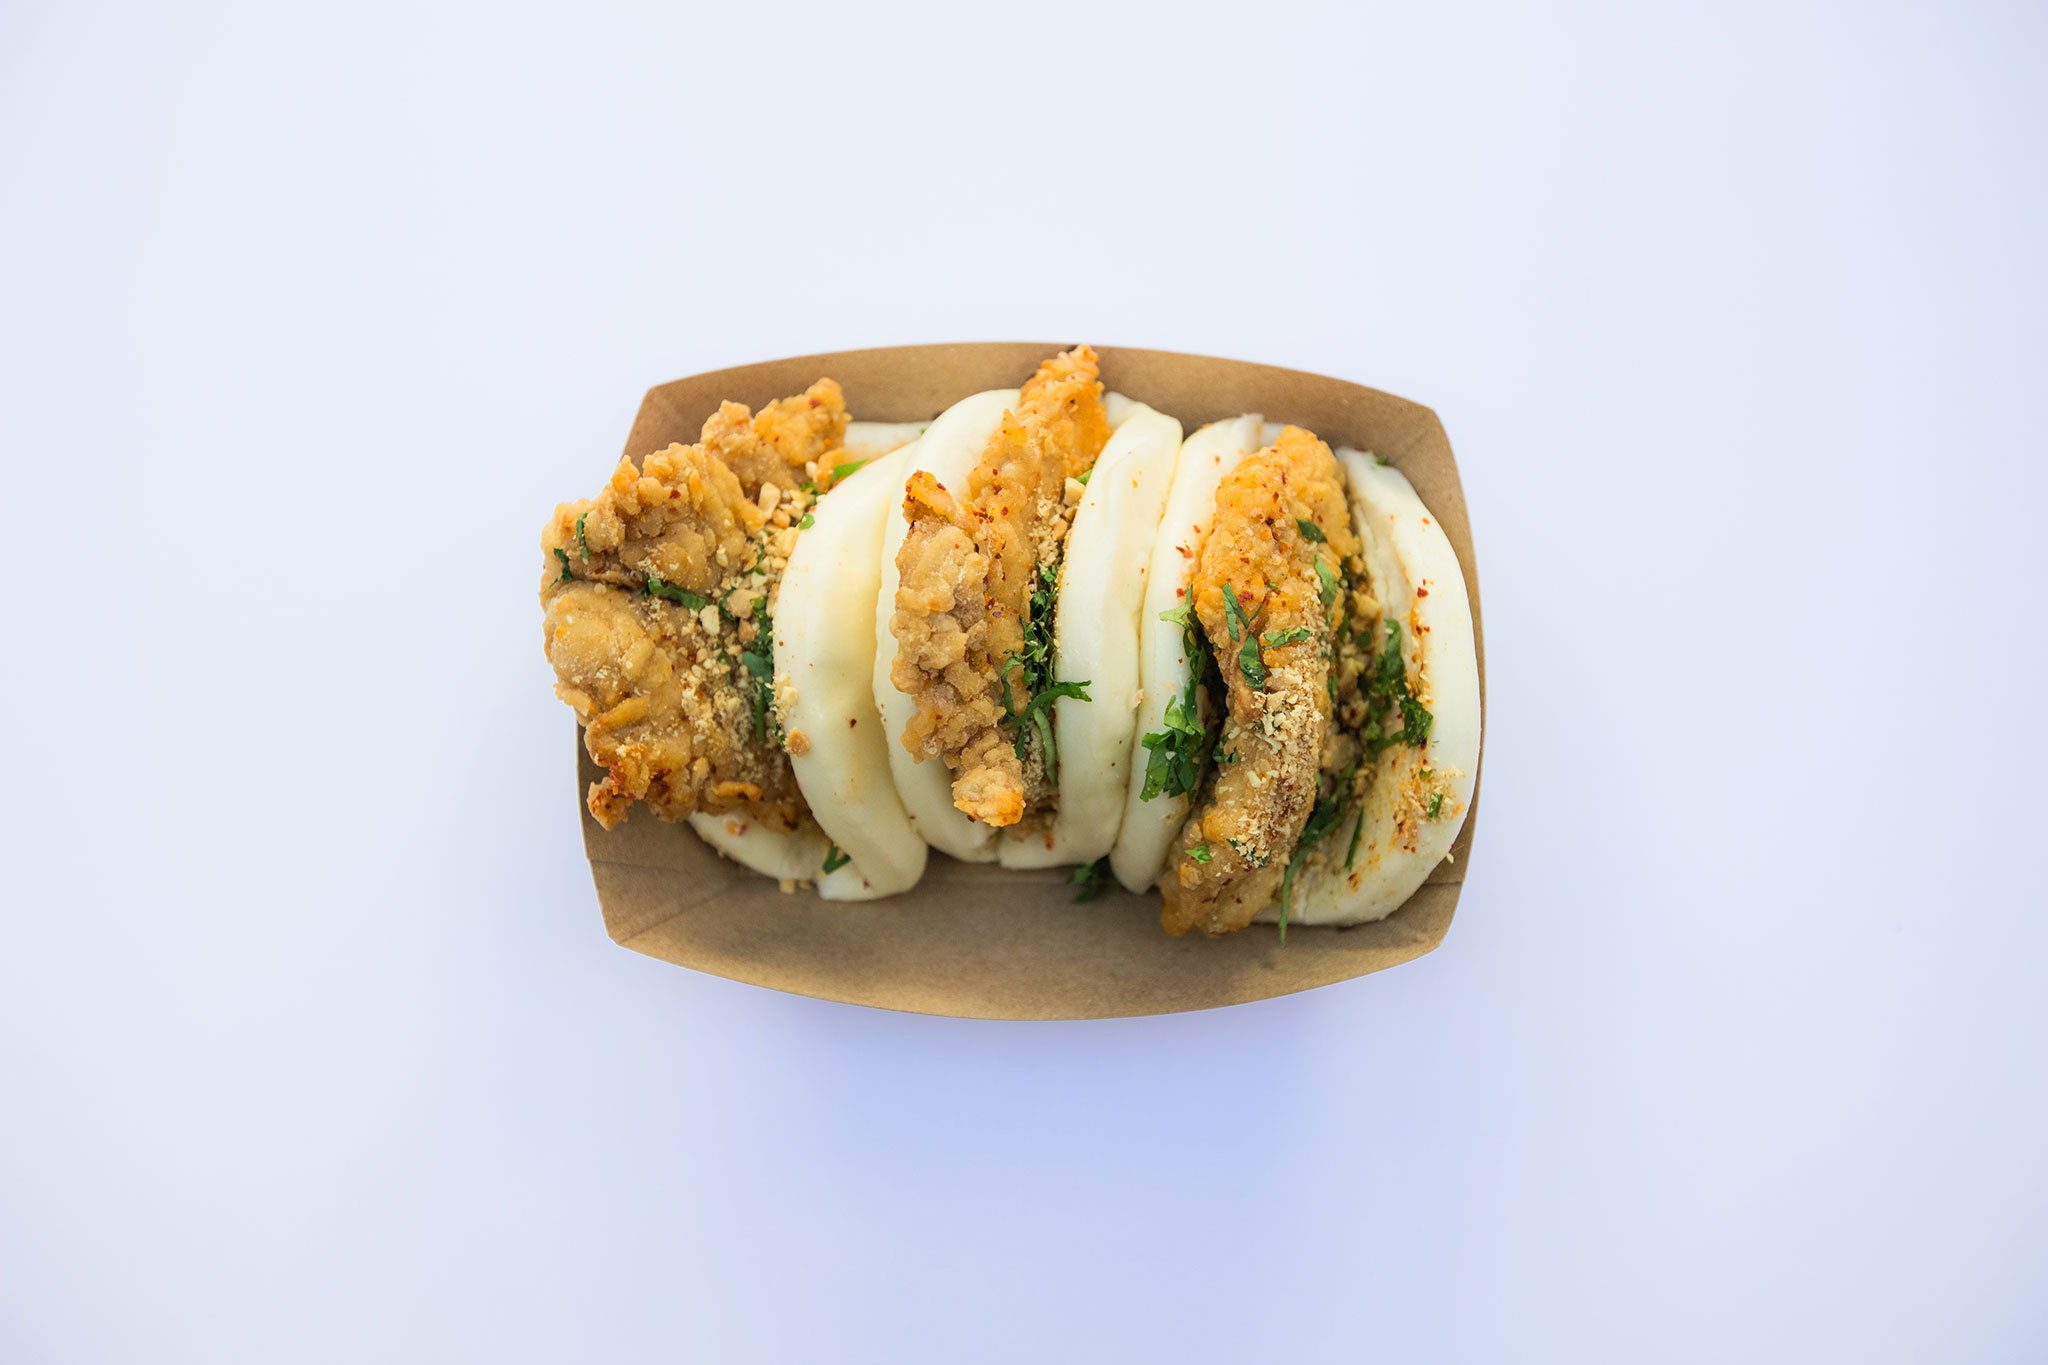 Baohaus at Far East Plaza